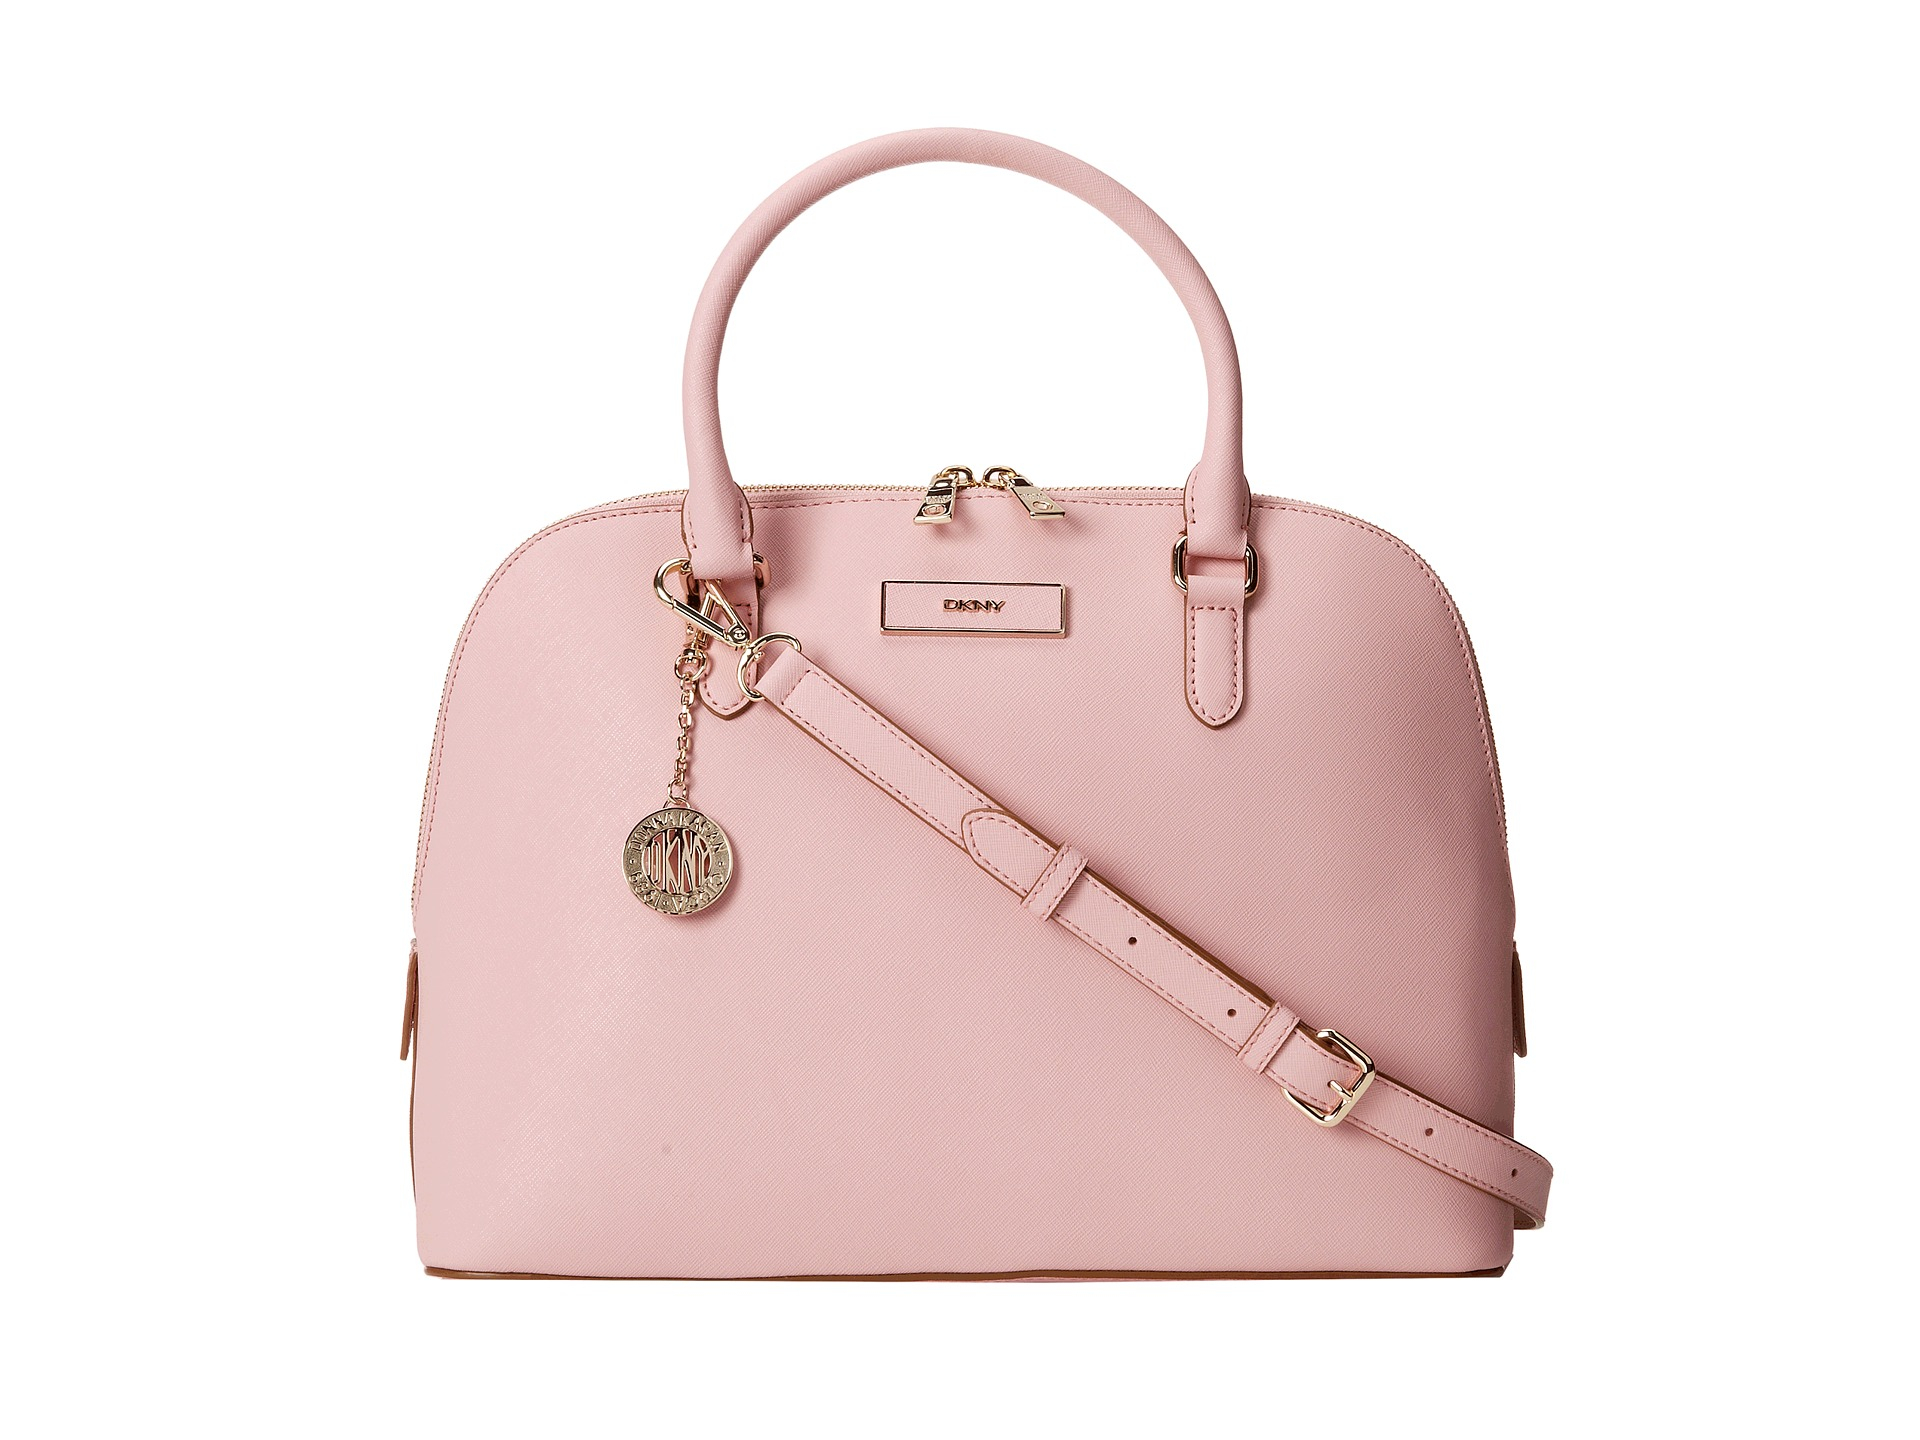 dkny bryant park saffiano leather round satchel w det ss in pink lyst. Black Bedroom Furniture Sets. Home Design Ideas